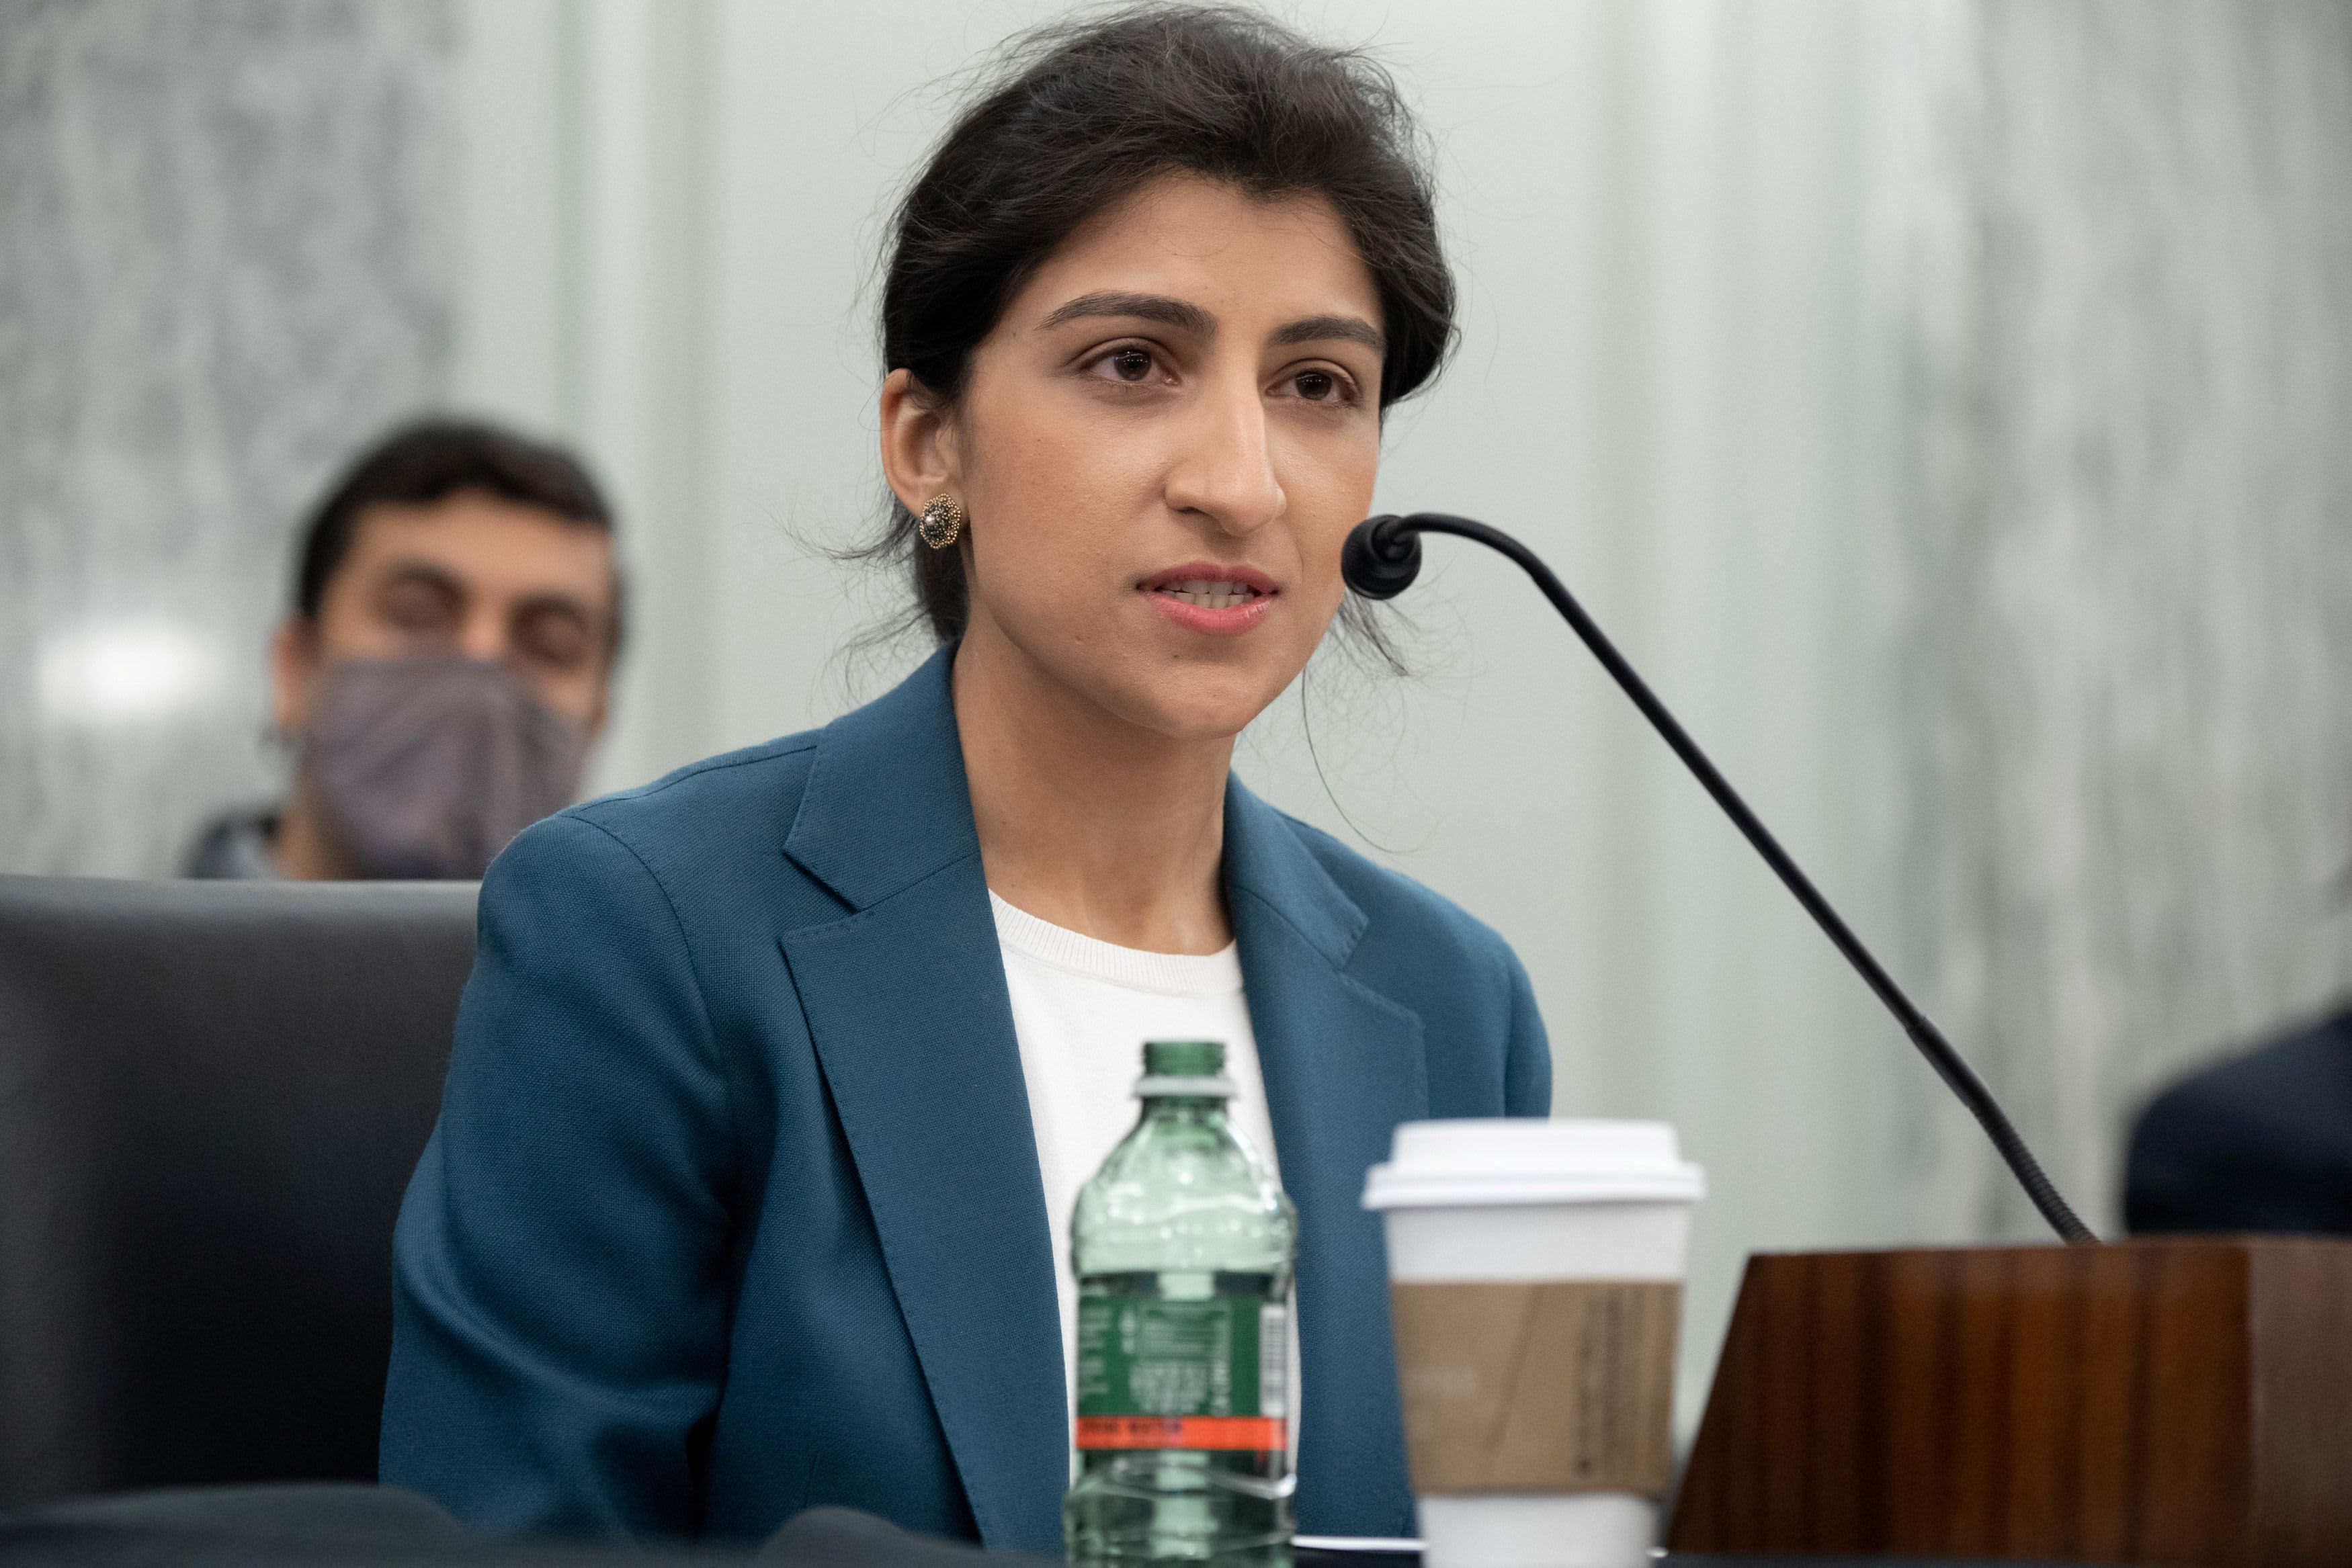 Senate committee advances Big Tech critic Lina Khan's nomination to the FTC